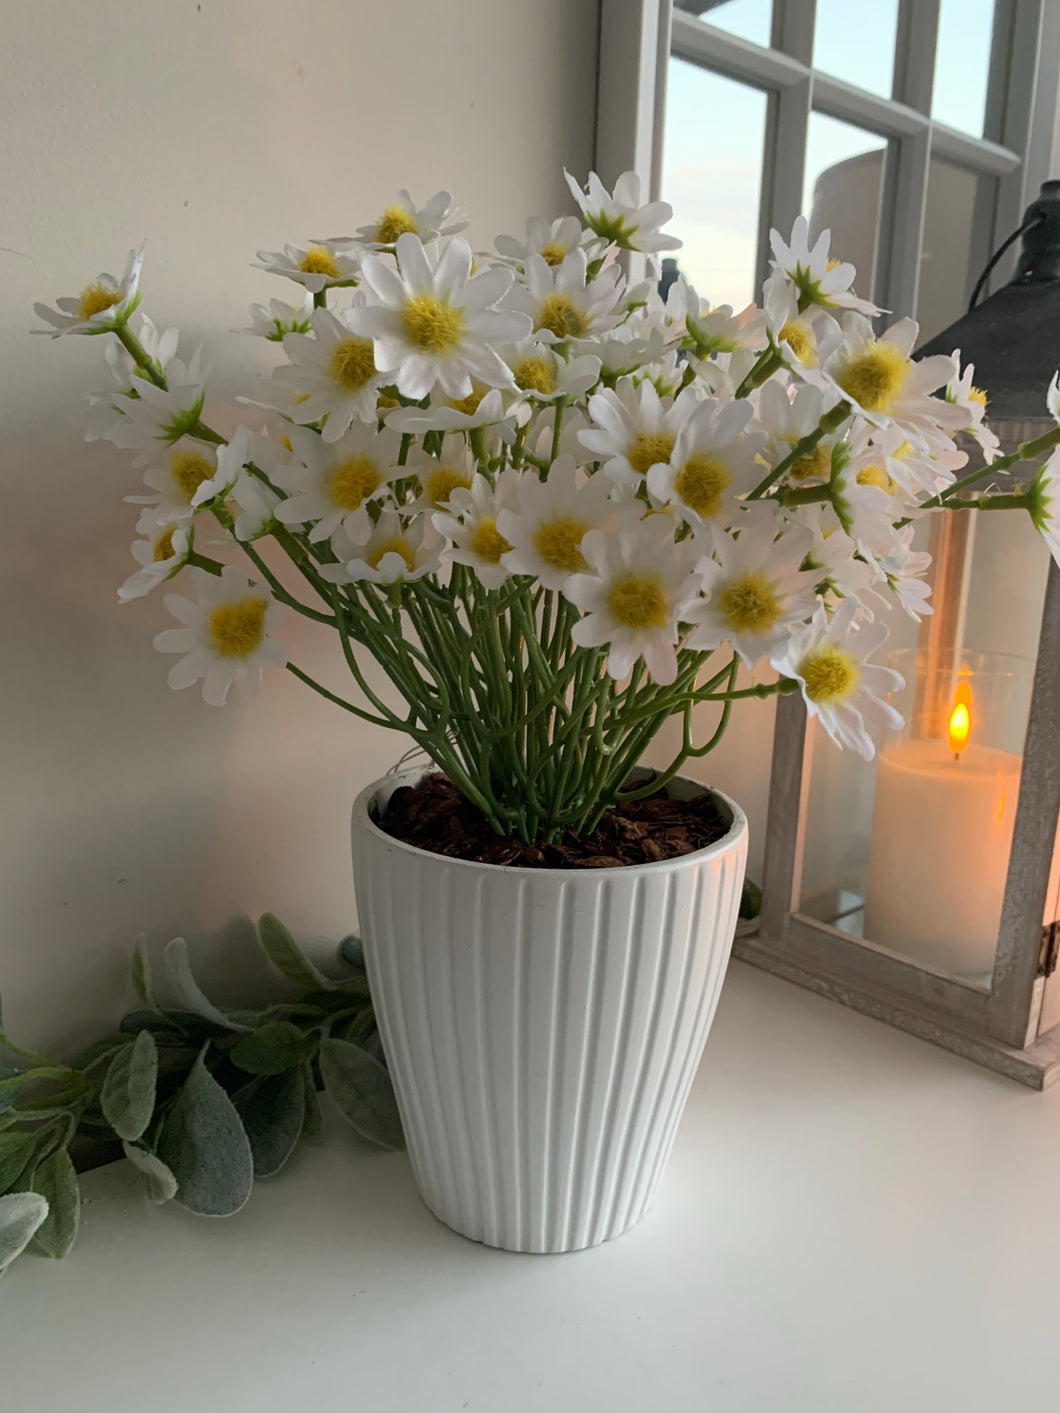 Potted White Summer Daisies